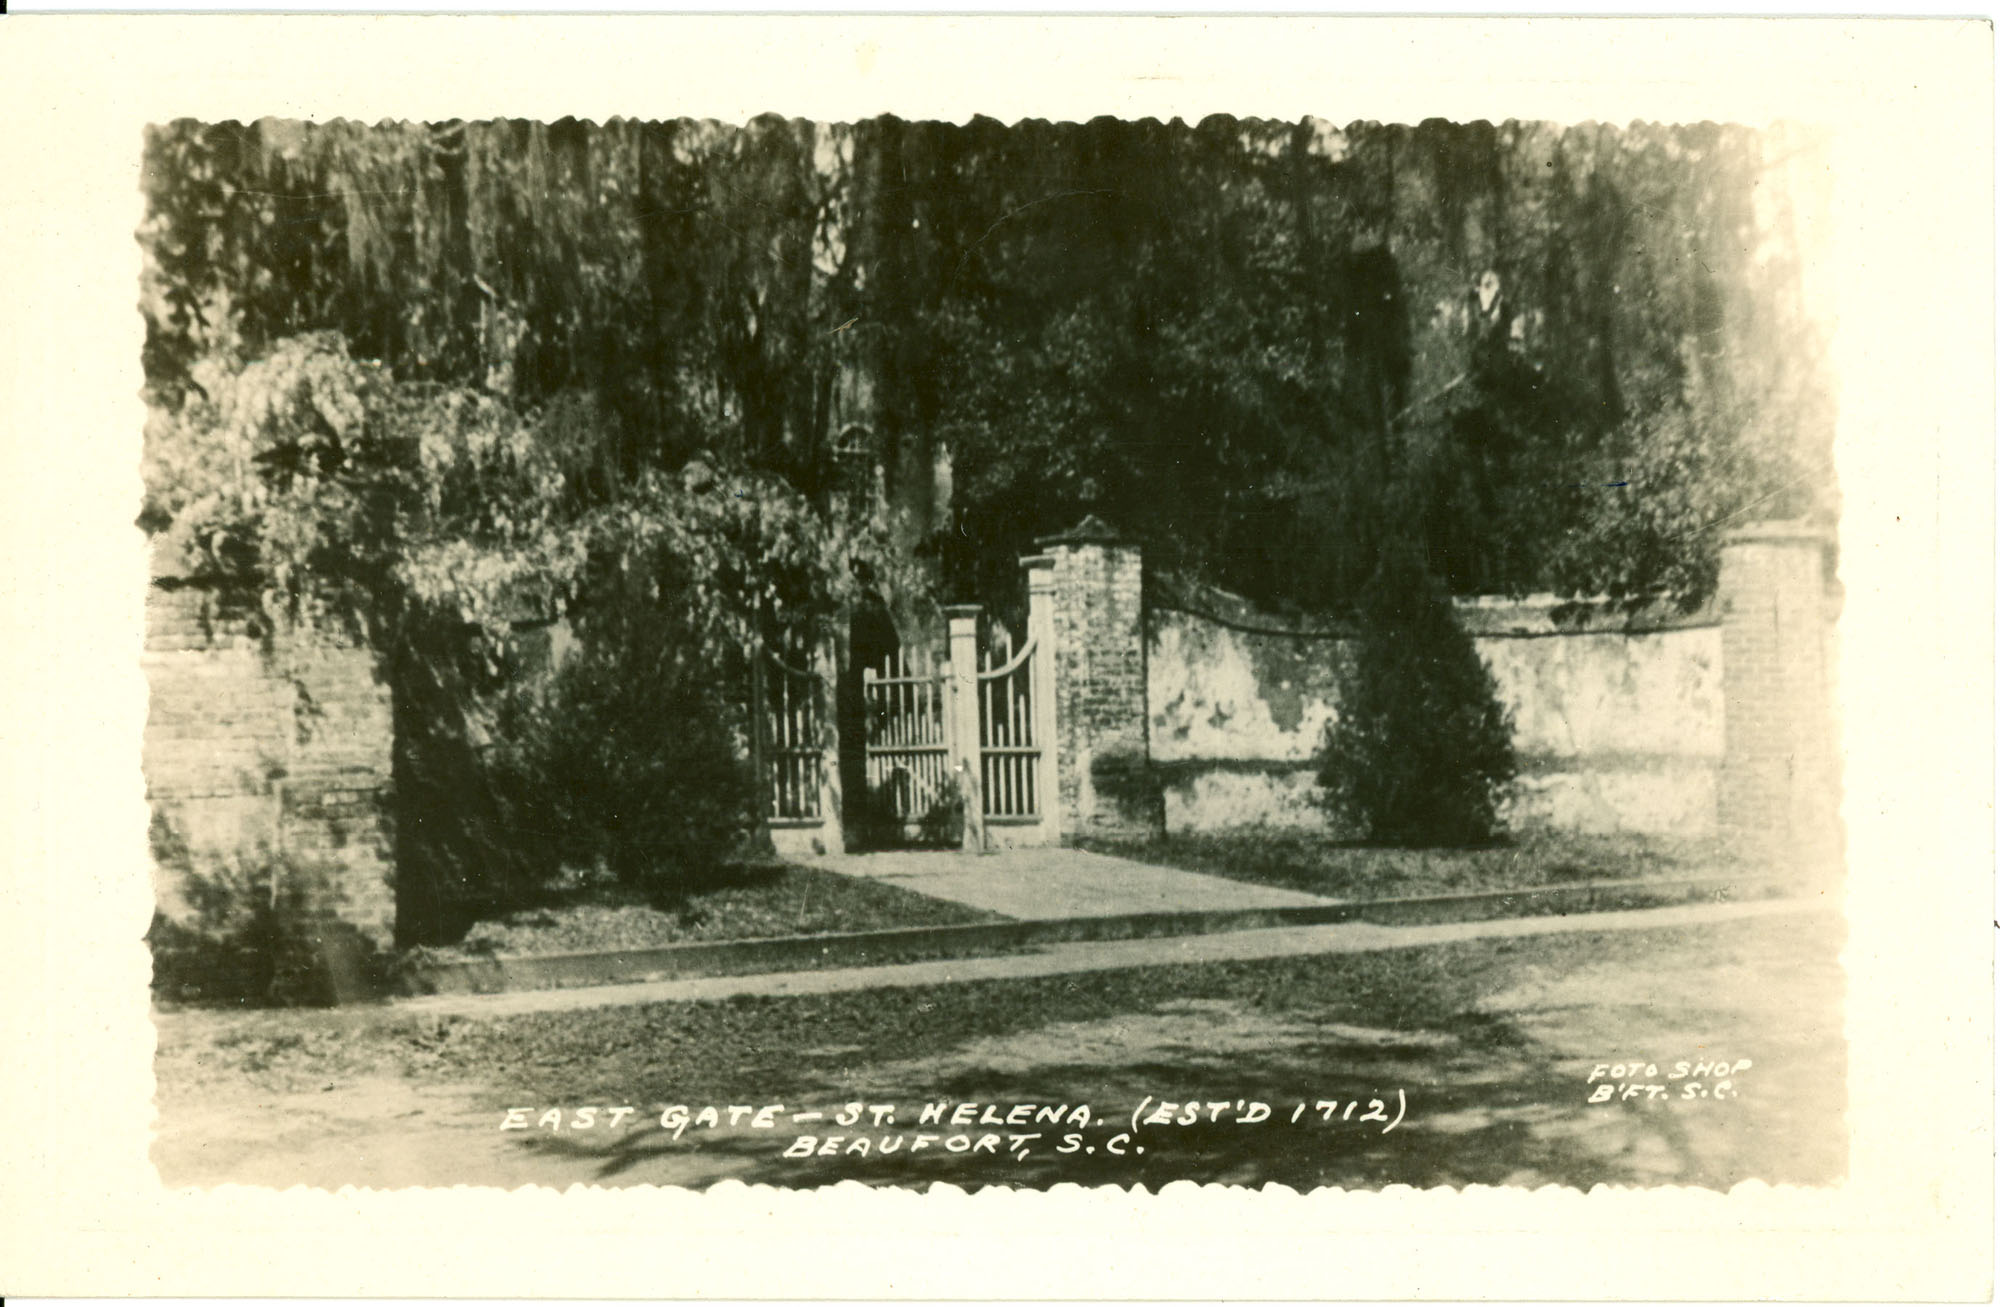 East Gate - St. Helena (Established 1712)